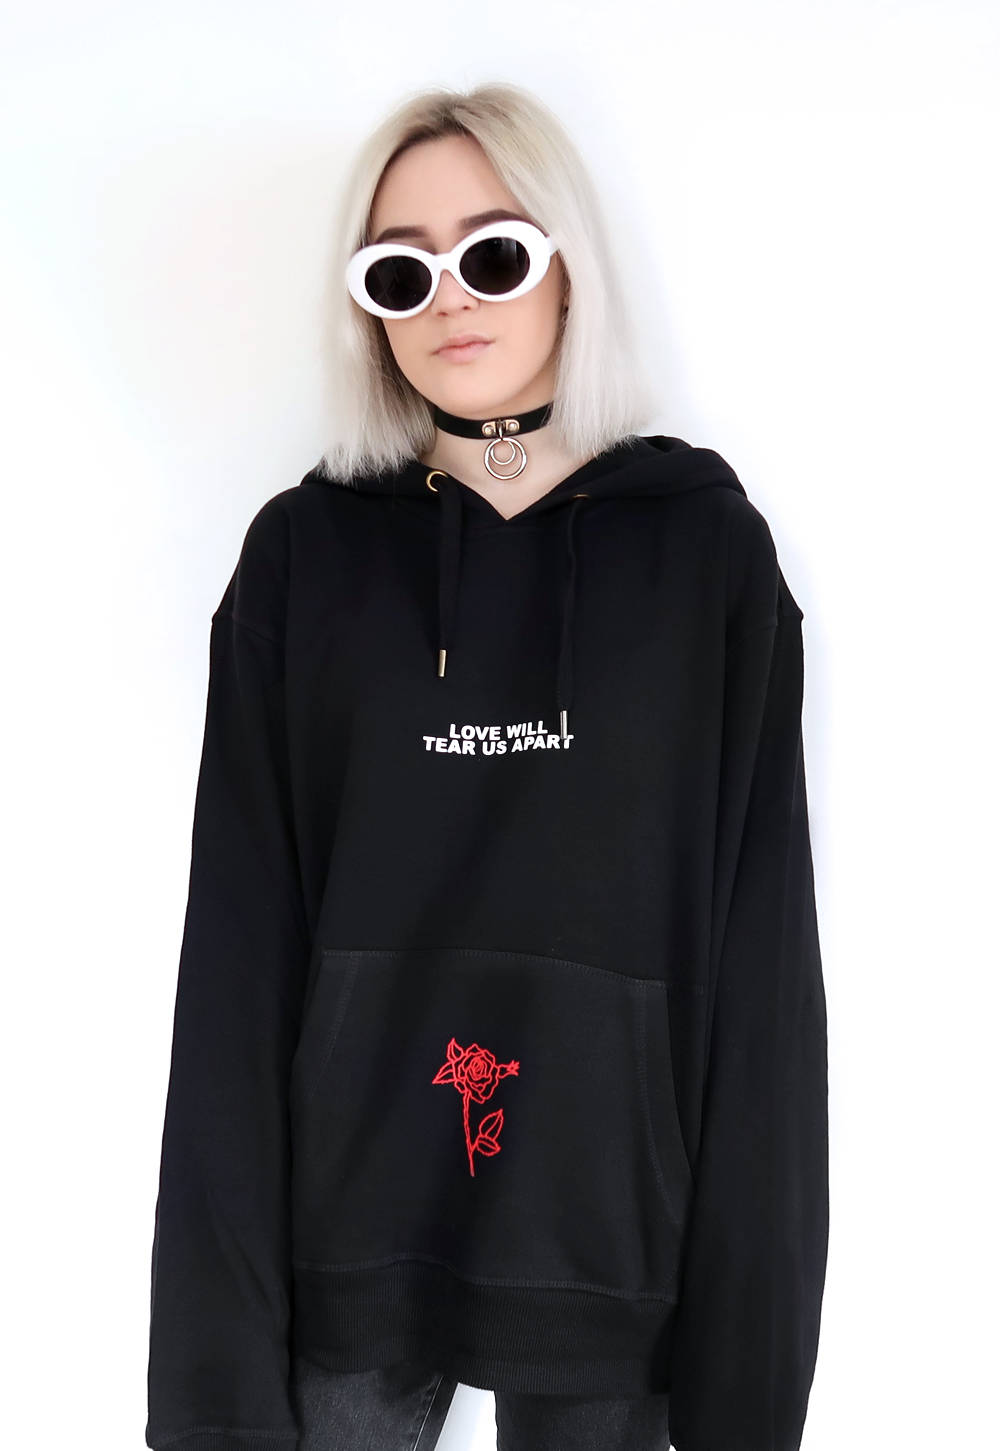 Autumn Hoodies Sweatshirt Women Fashion Letter Rose Printed Tracksuit Tops Casual Pockets Outerwear Loose Sweatshirt Plus Size gown